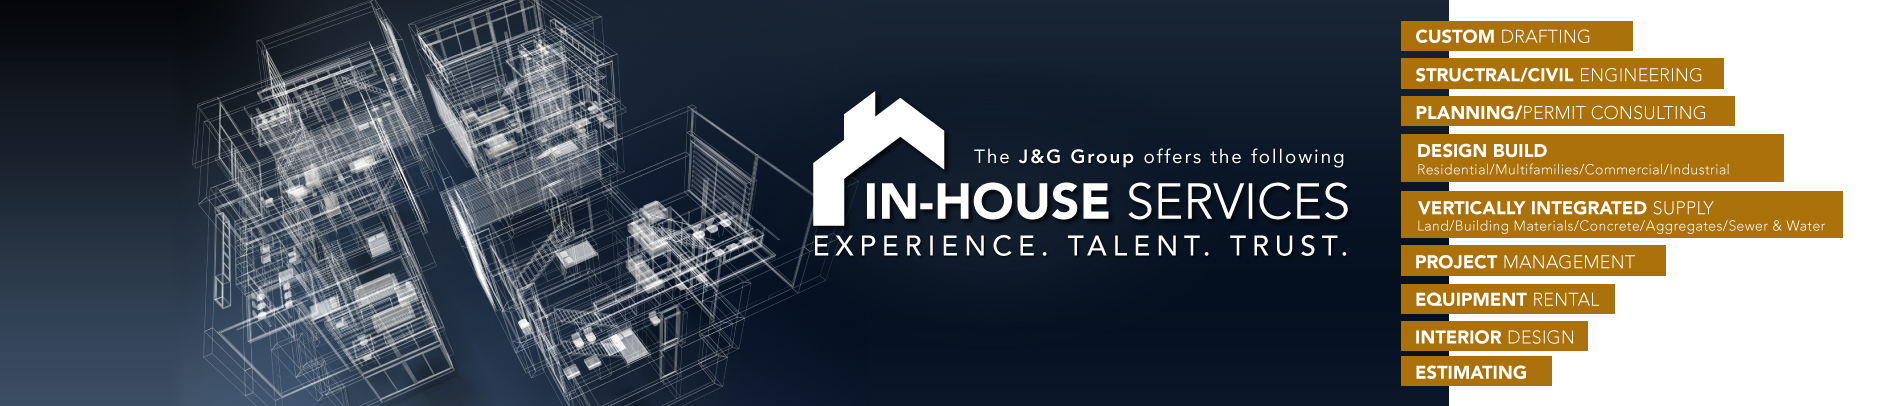 J&G Group In-House Services